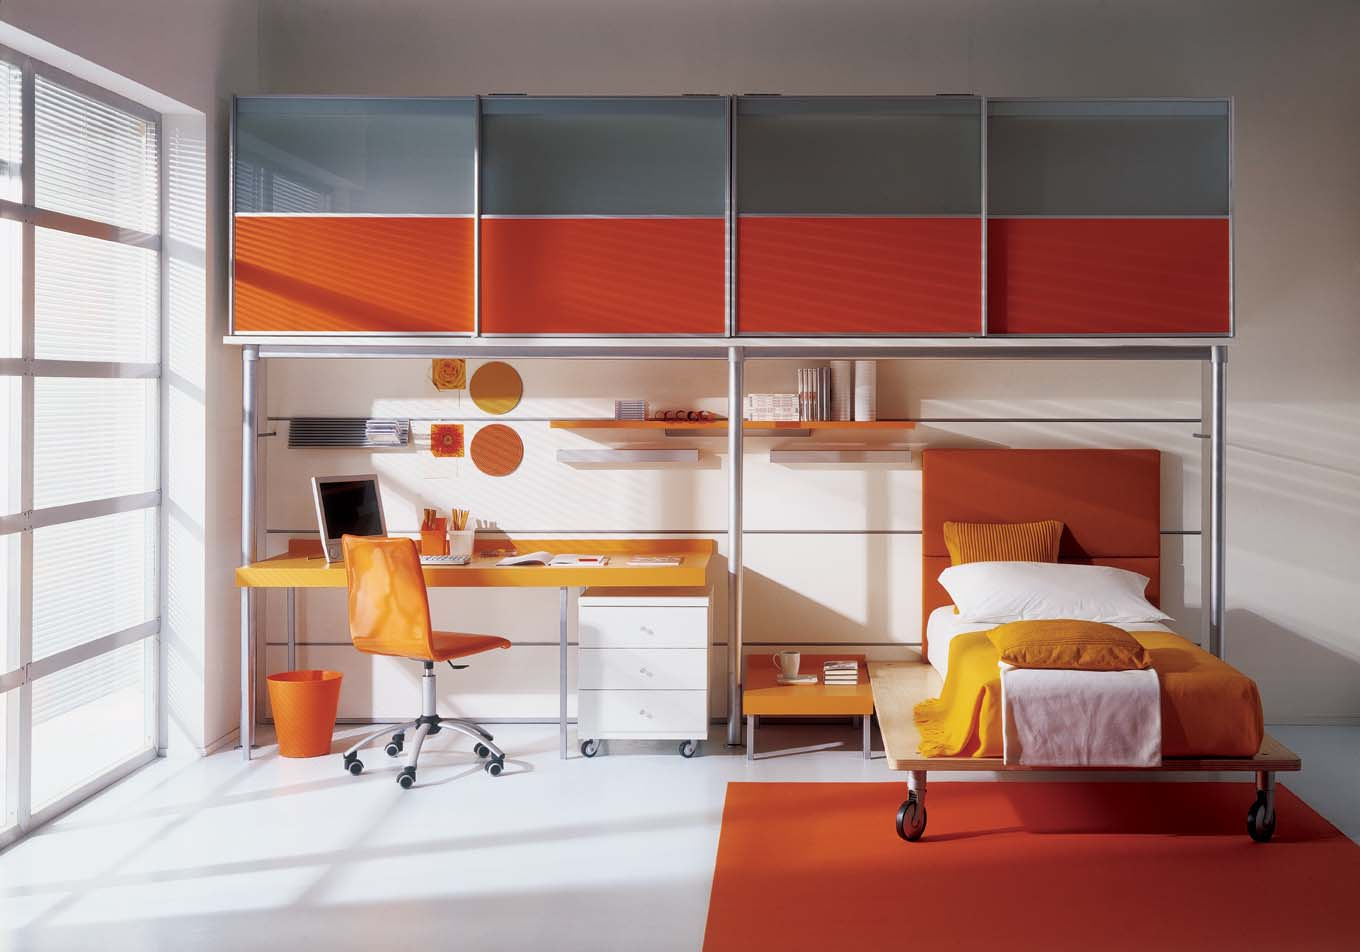 Grey and orange kids bedroom interior - Bedrooms interior design ...